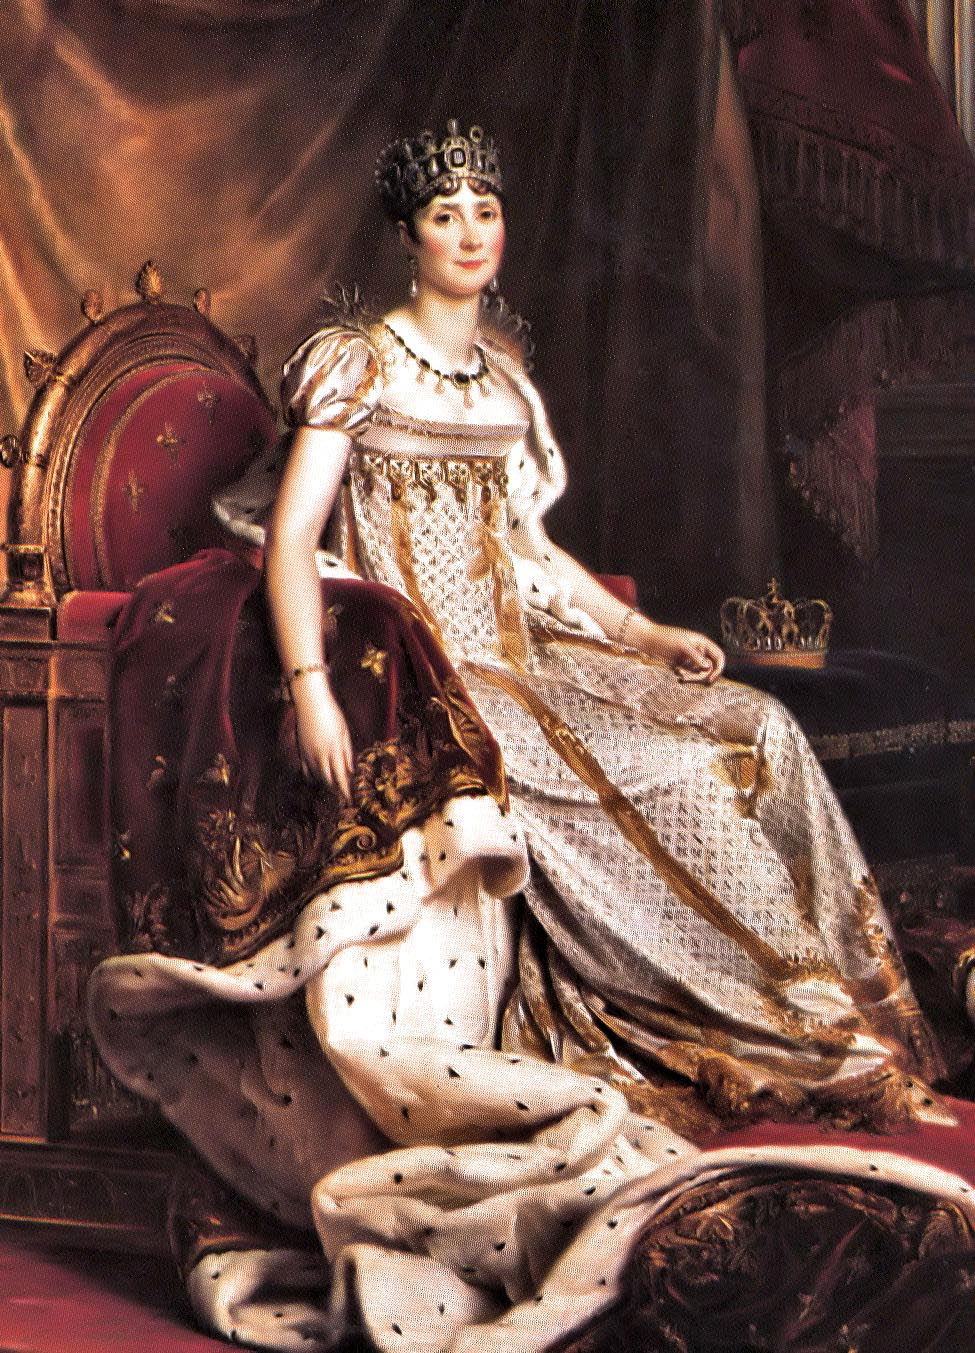 Napoleon's first wife, Joséphine